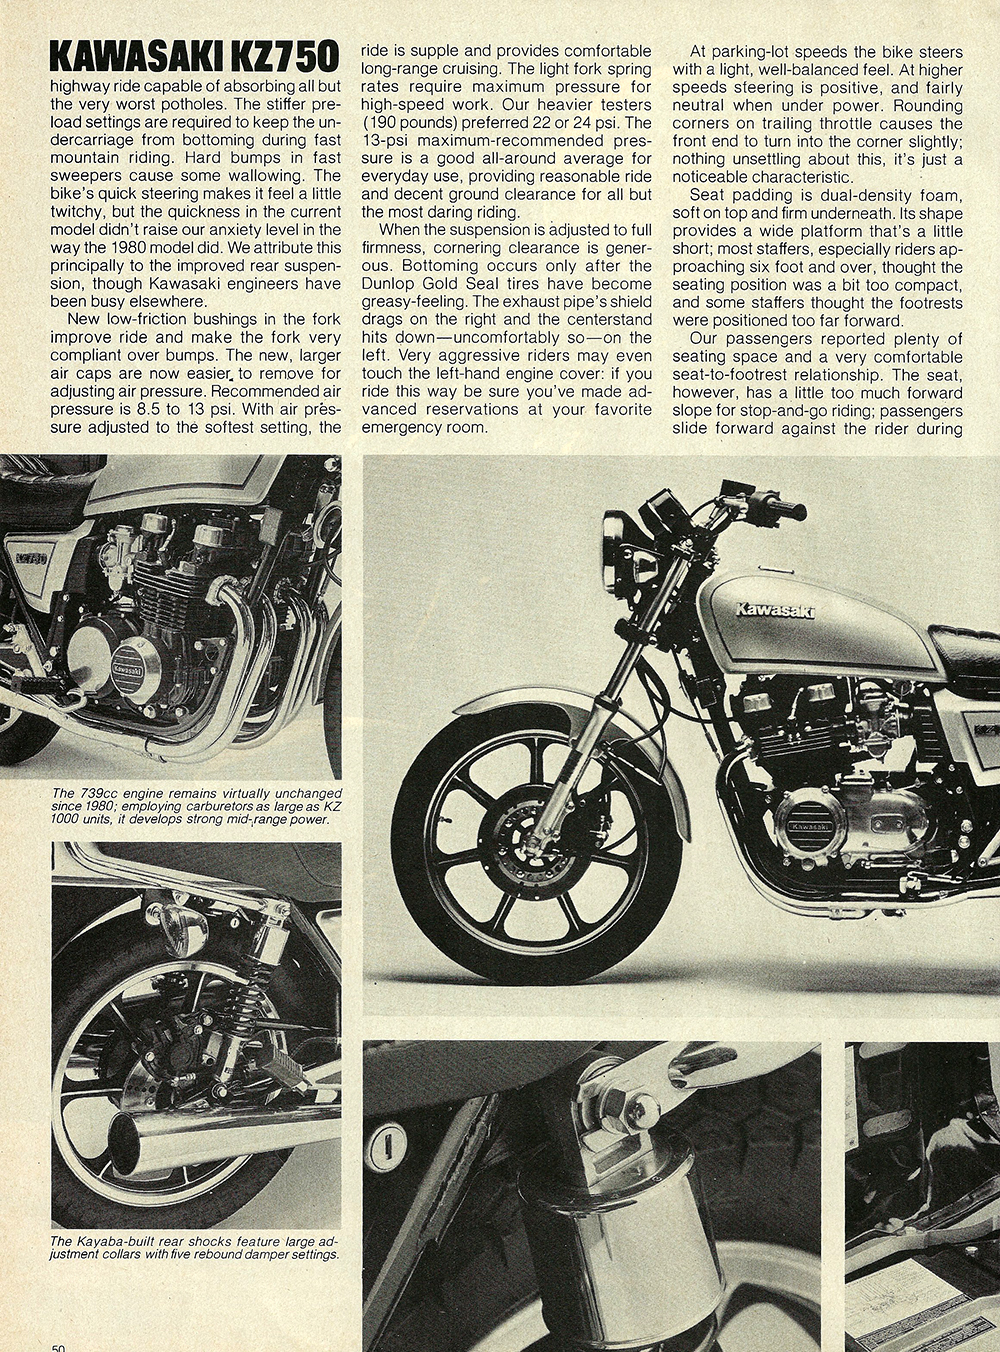 1982 Kawasaki kz750 road test 03.JPG